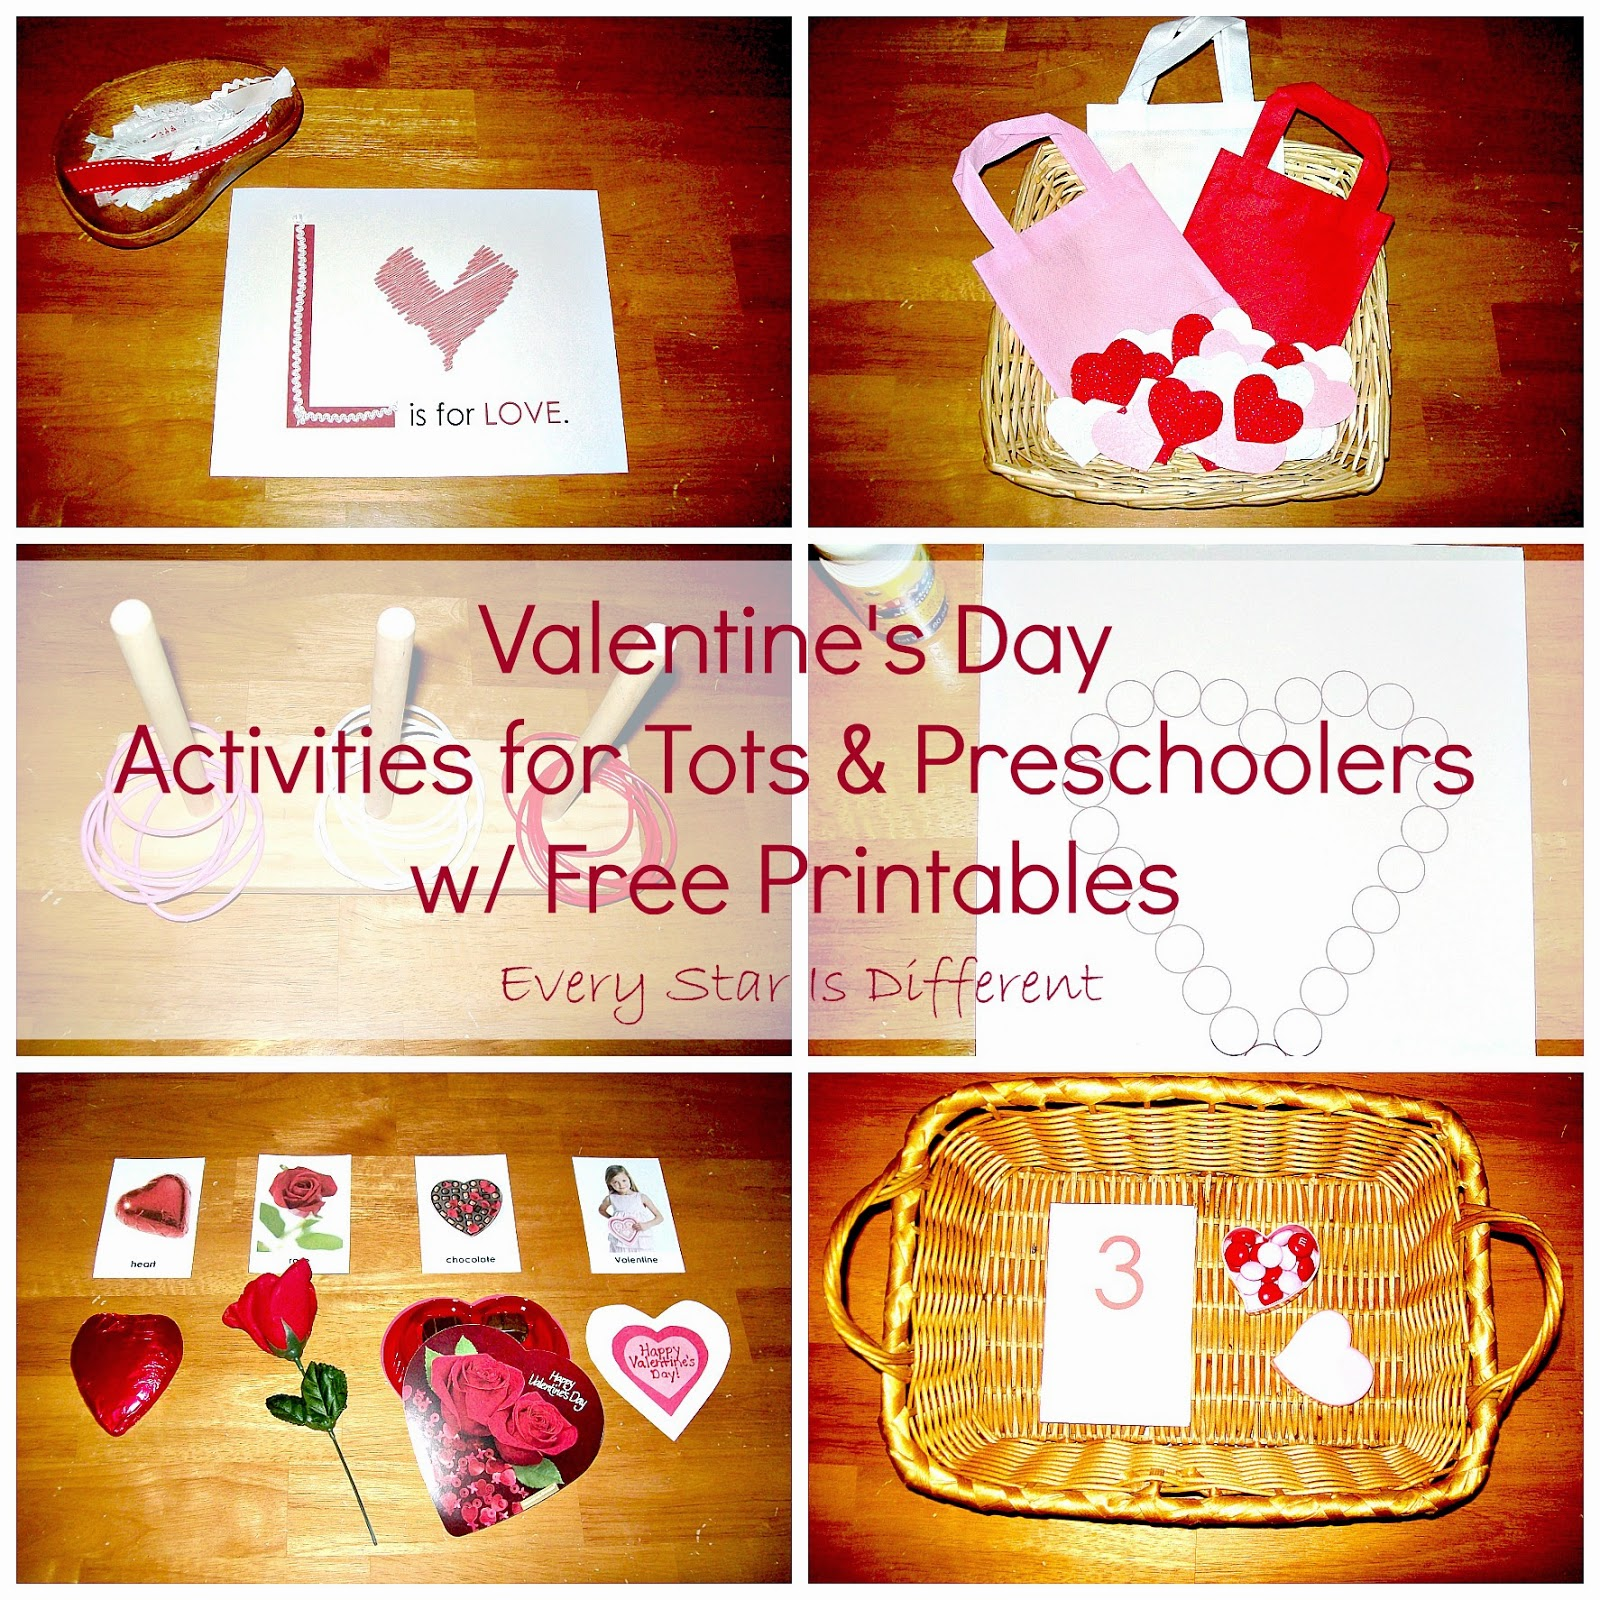 Valentine's Day Activities for Tots